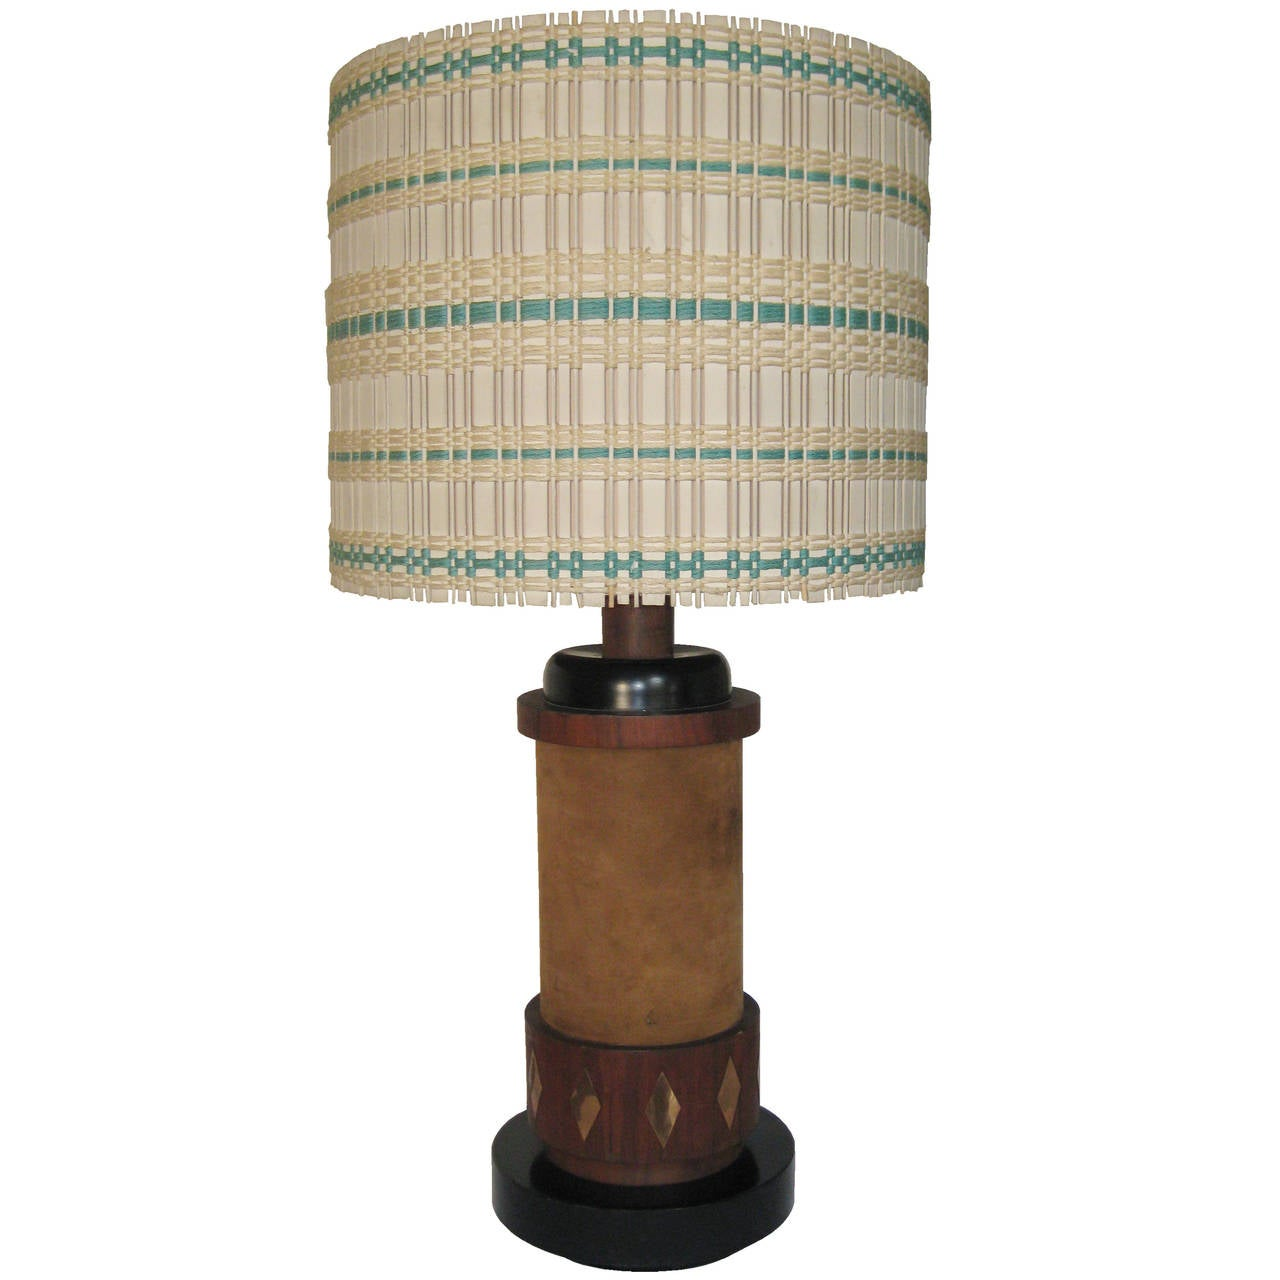 Oversized Table Lamp Designed by Paul Laszlo, circa 1950 at 1stdibs